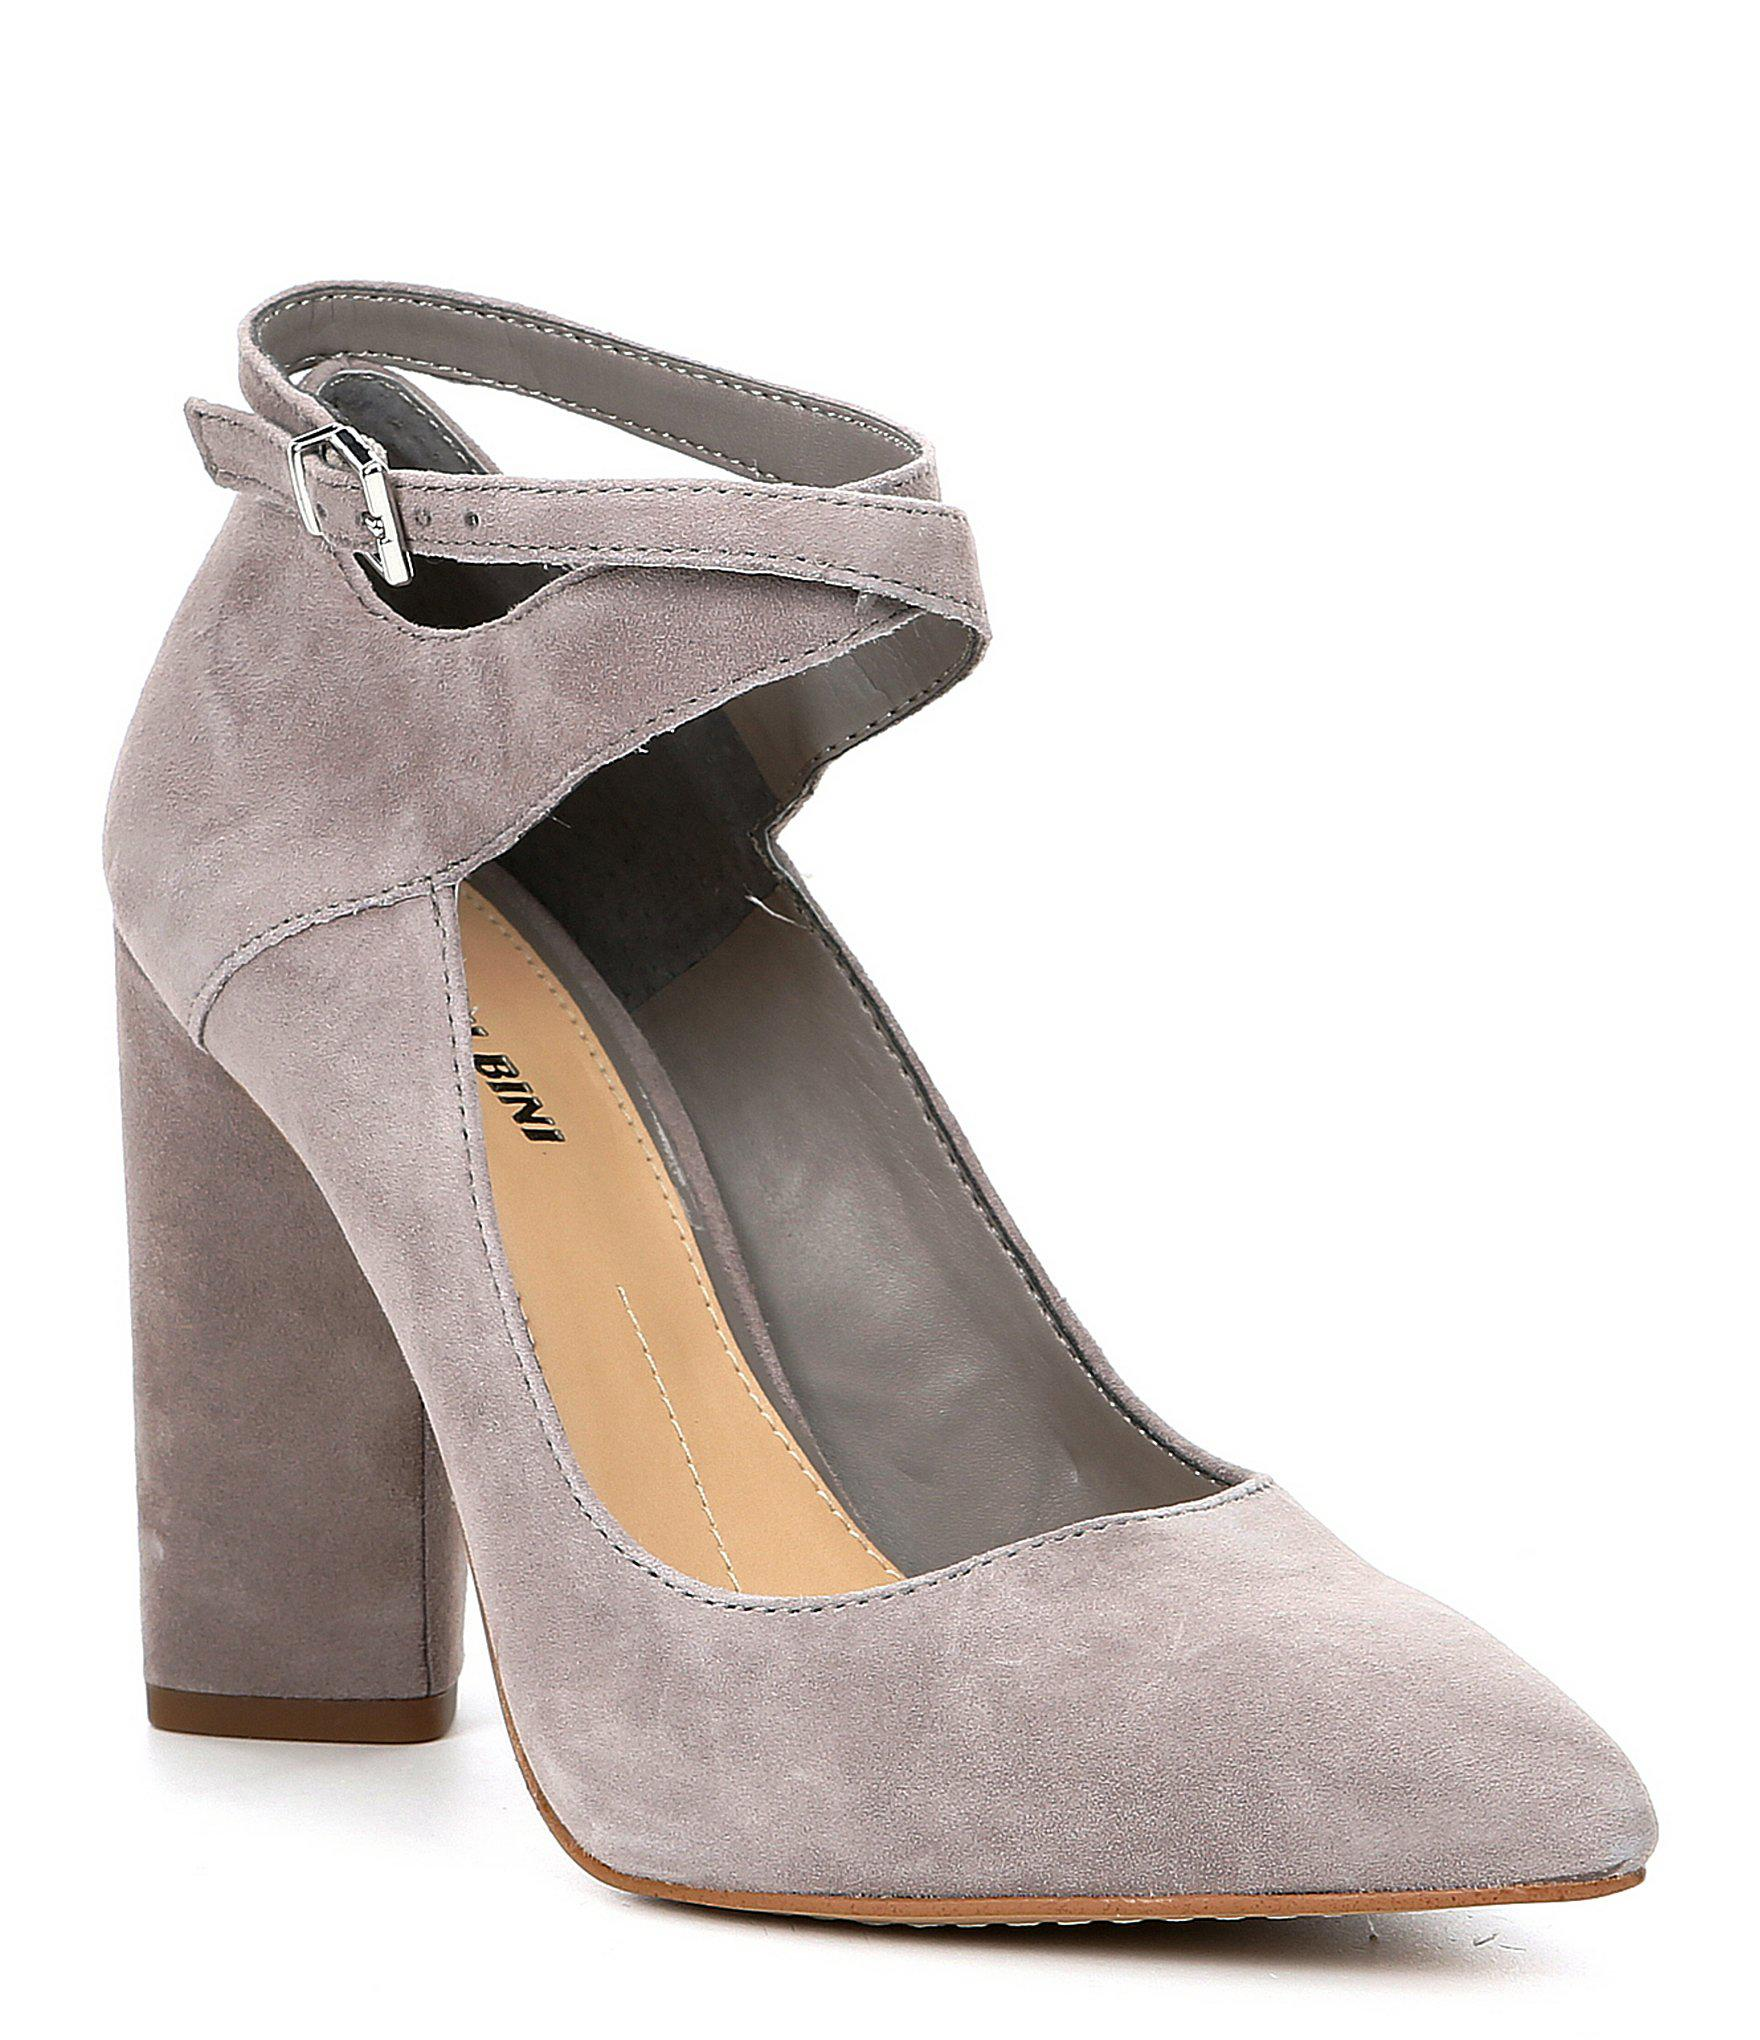 1cd06243ed47 Lyst - Gianni Bini Sharees Suede Ankle Wrap Pumps in Gray